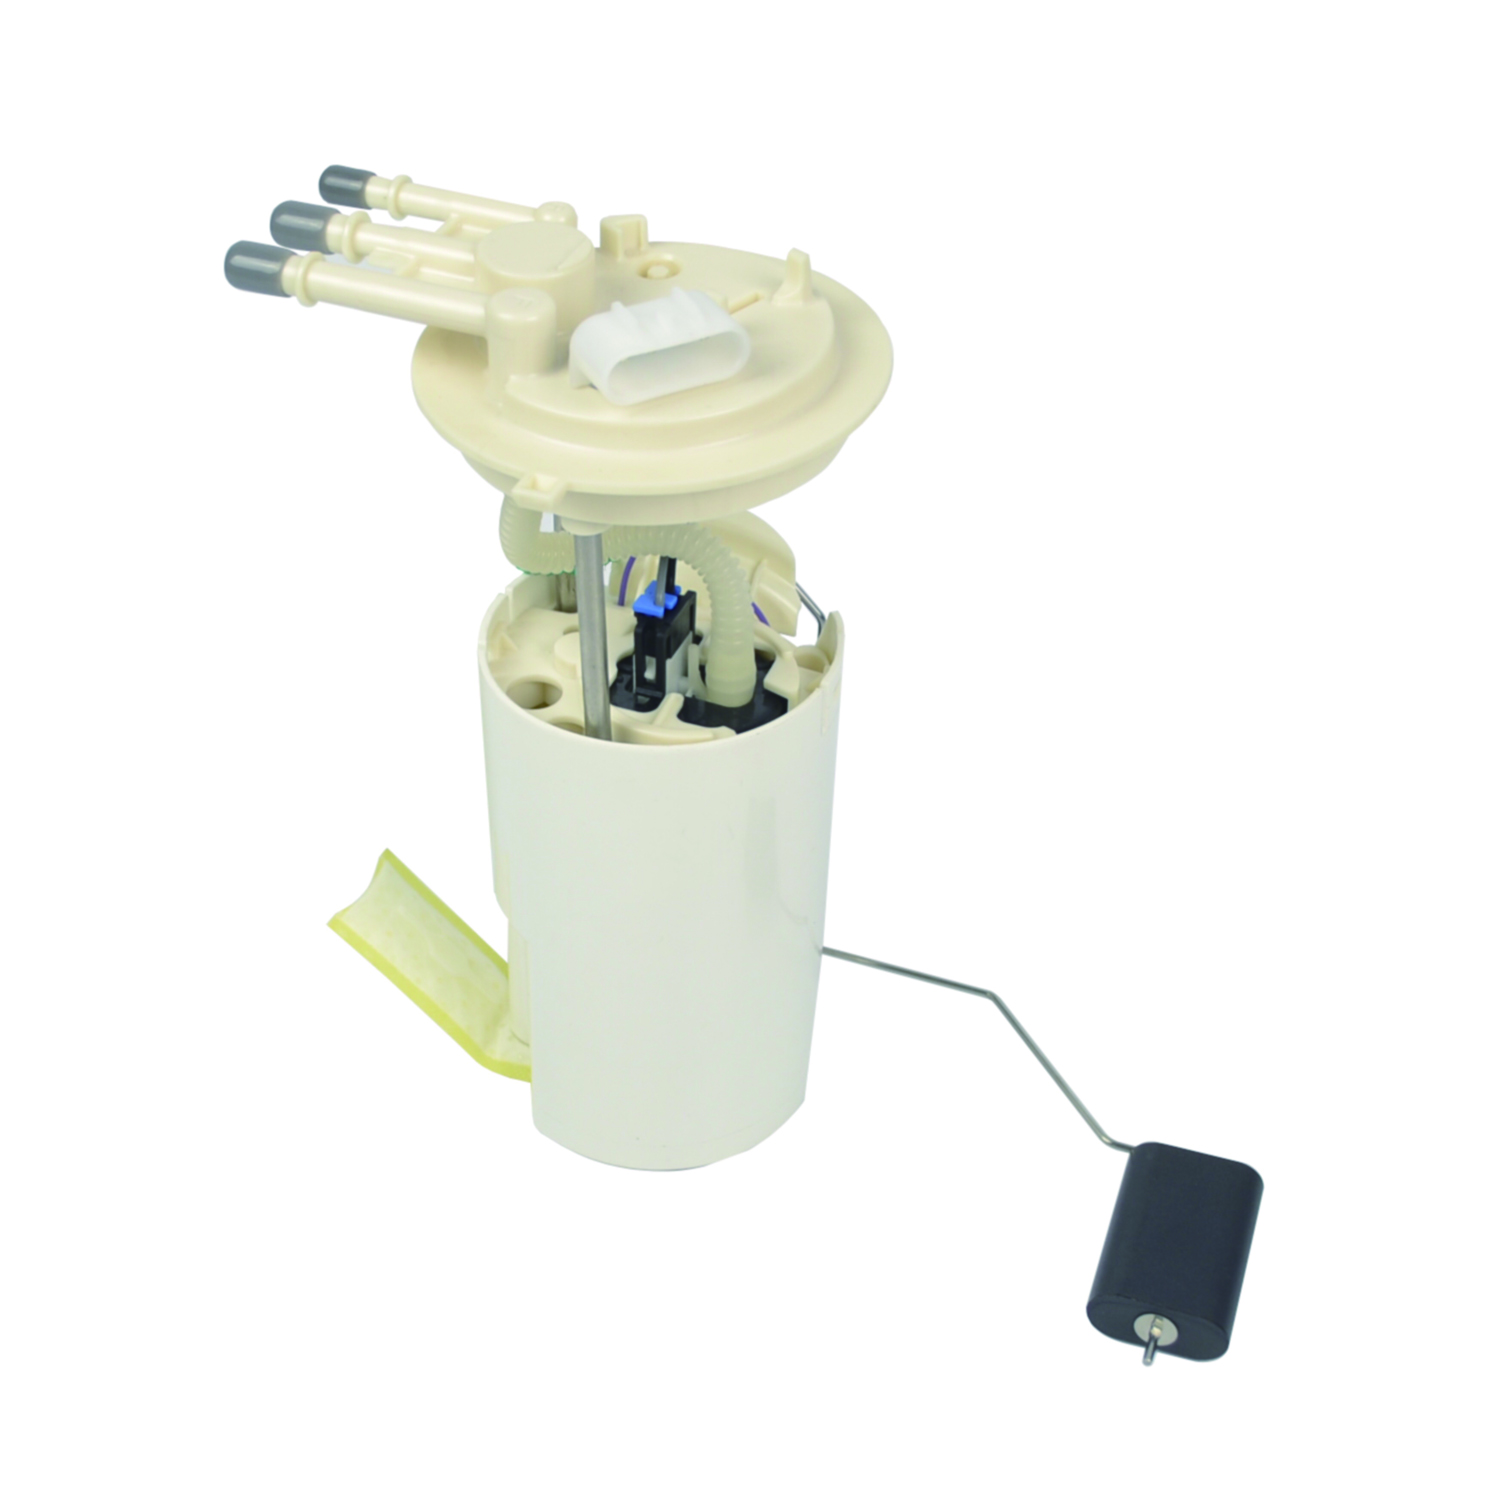 hight resolution of fuel pump module assembly for 2000 2001 chevrolet suburban gmc yukon 6 0l v8